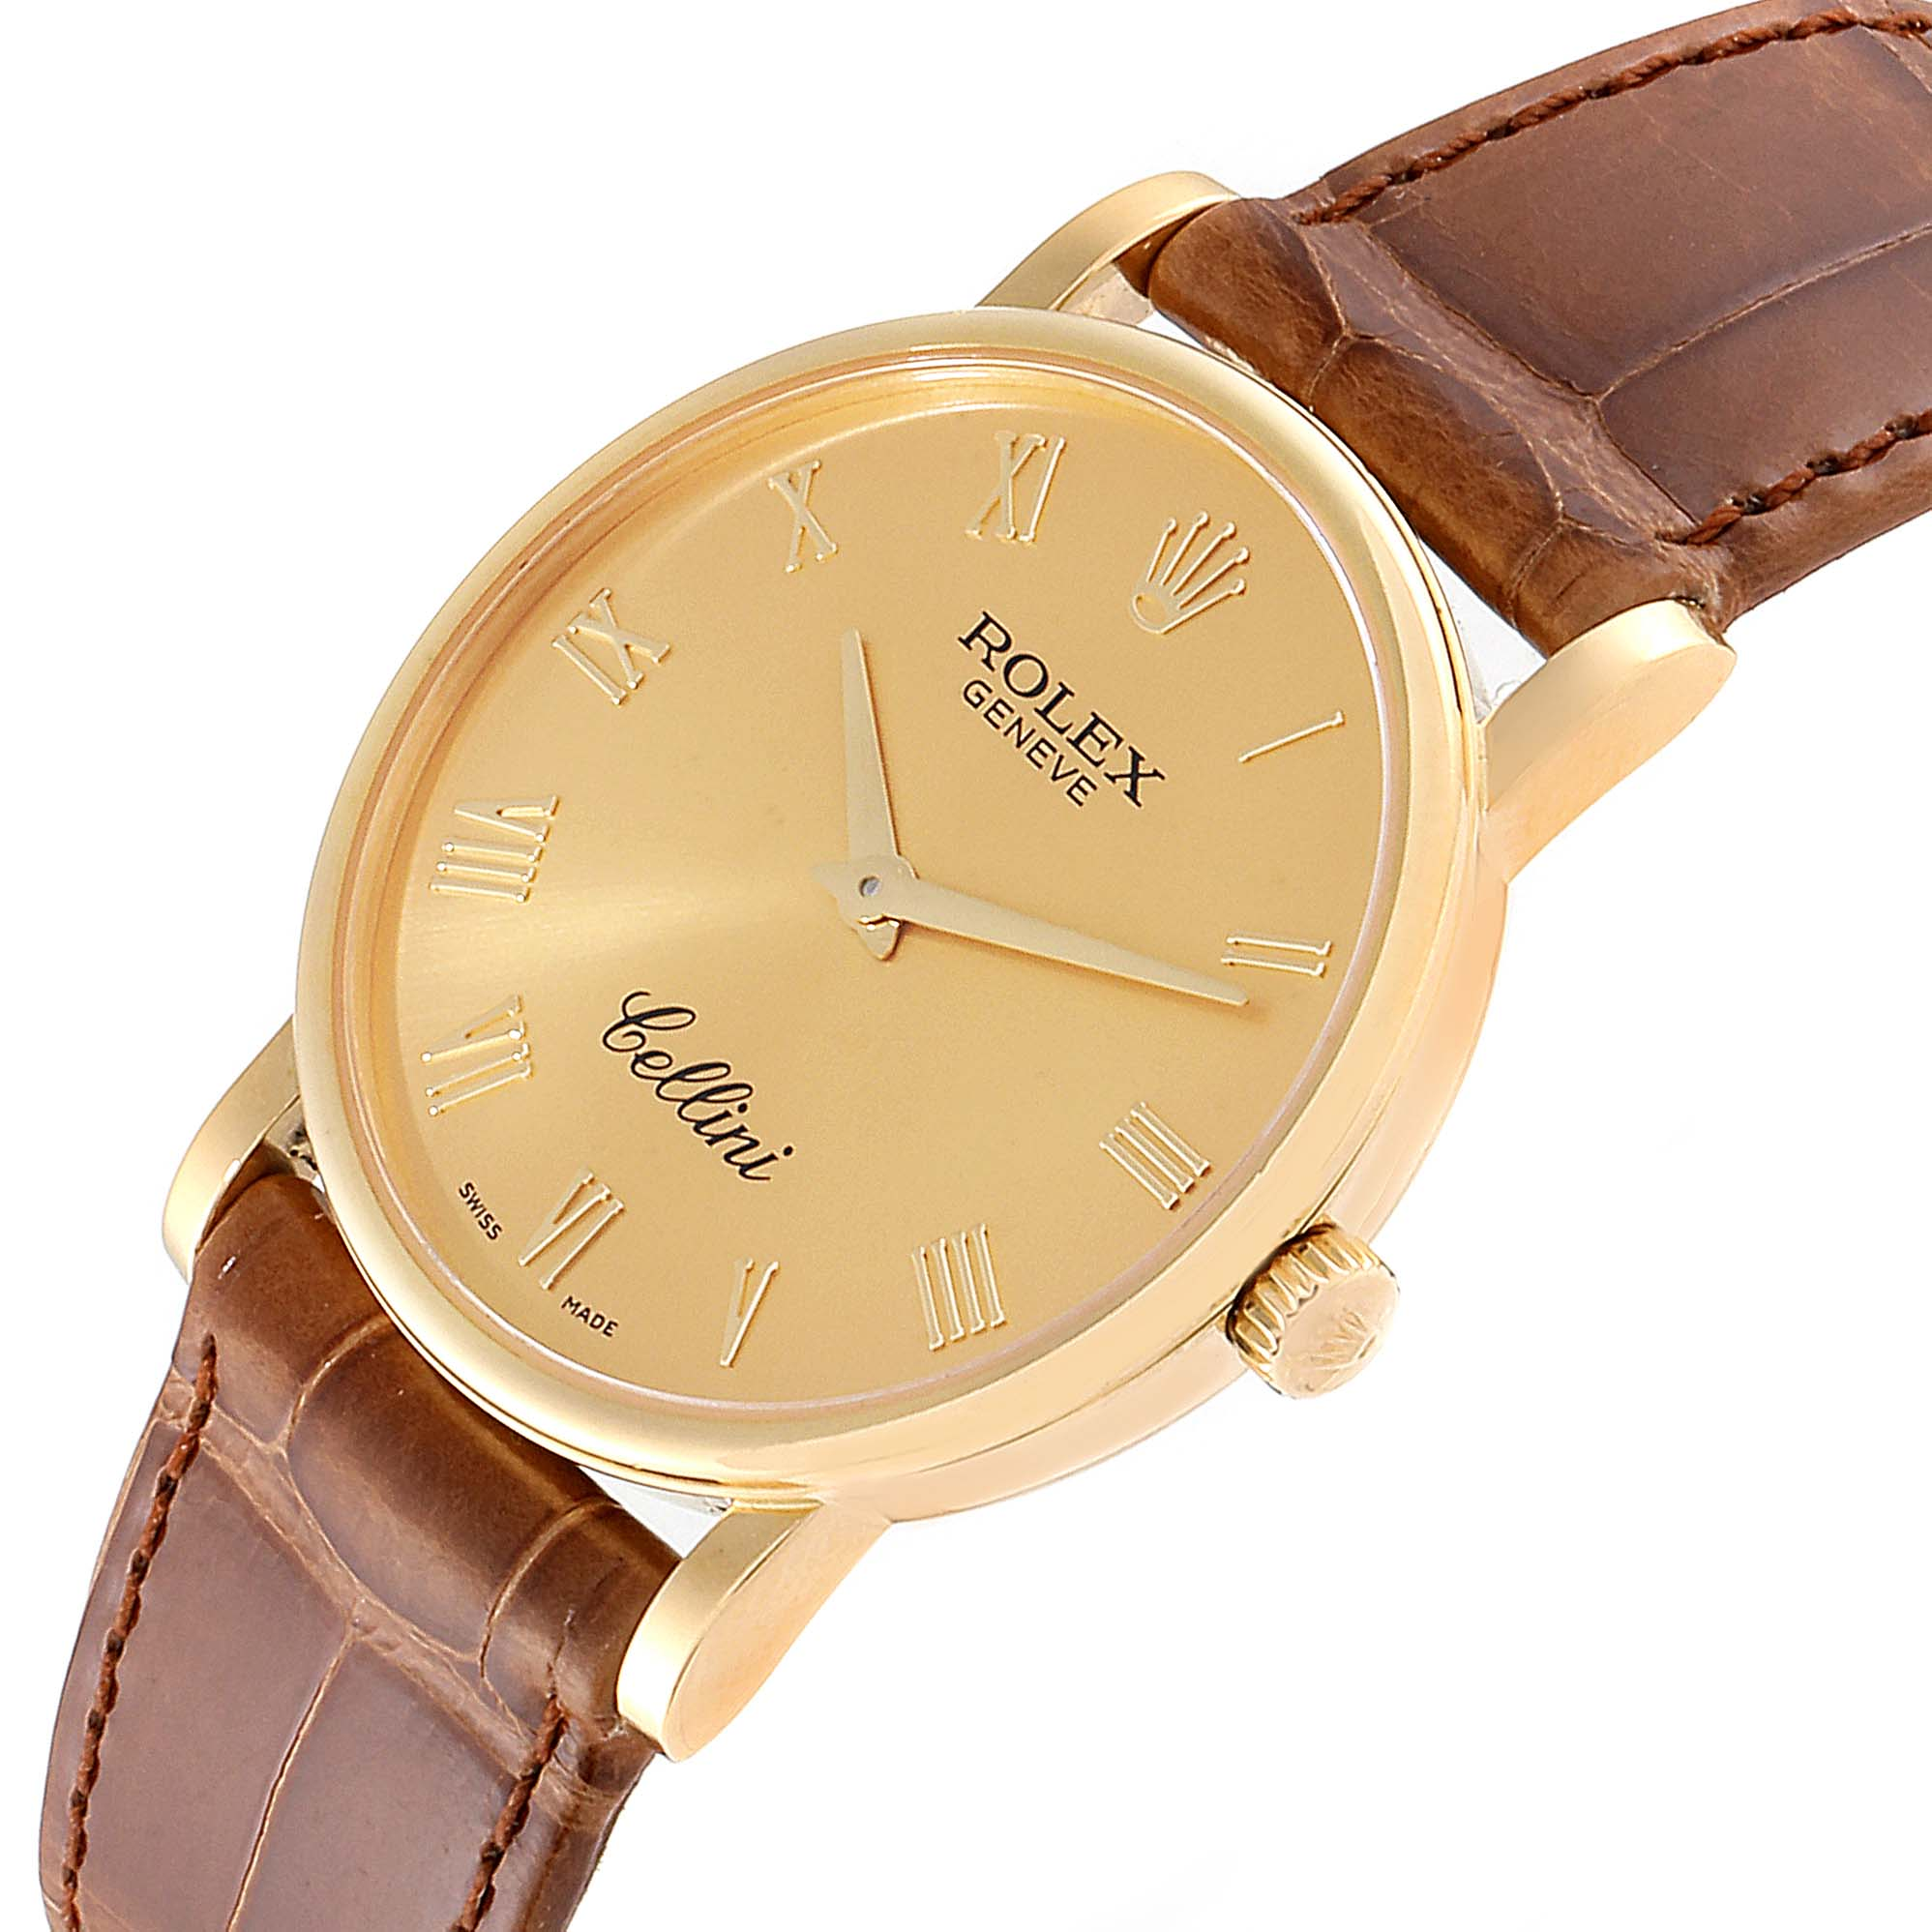 Rolex Cellini Classic 32mm Yellow Gold Brown Strap Mens Watch 5115 SwissWatchExpo